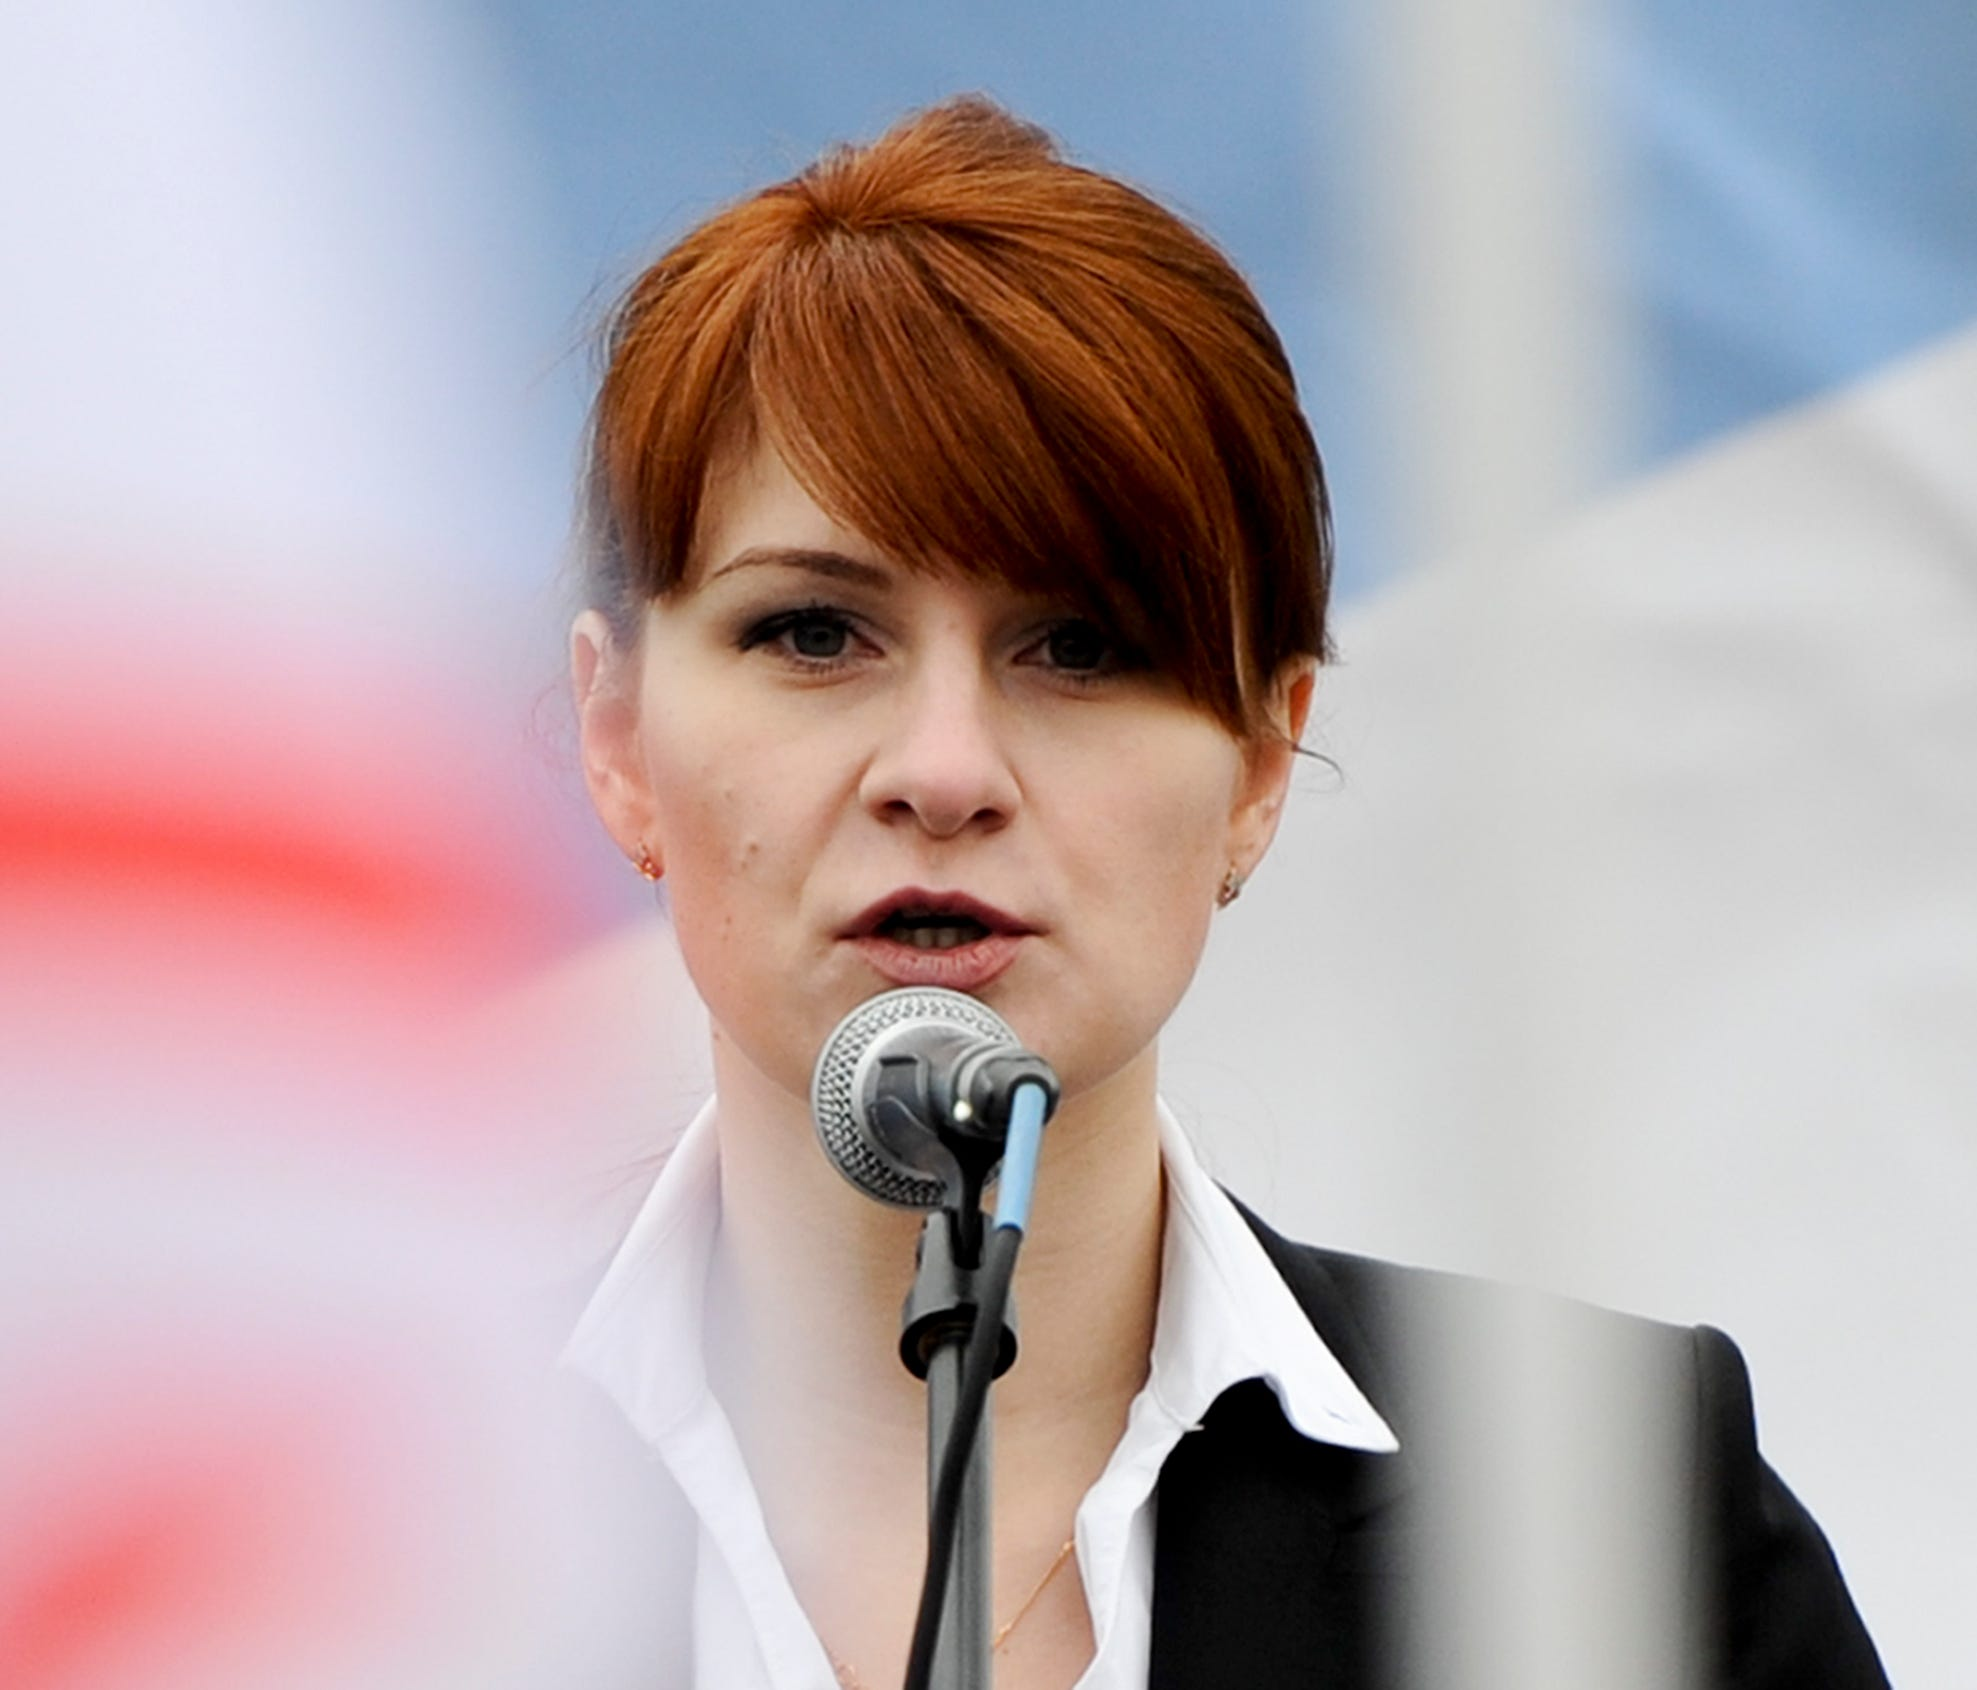 In this photo taken on Sunday, April 21, 2013, Maria Butina, leader of a pro-gun organization in Russia, speaks to a crowd during a rally in support of legalizing the possession of handguns in Moscow, Russia. Butina, a 29-year-old gun-rights activist